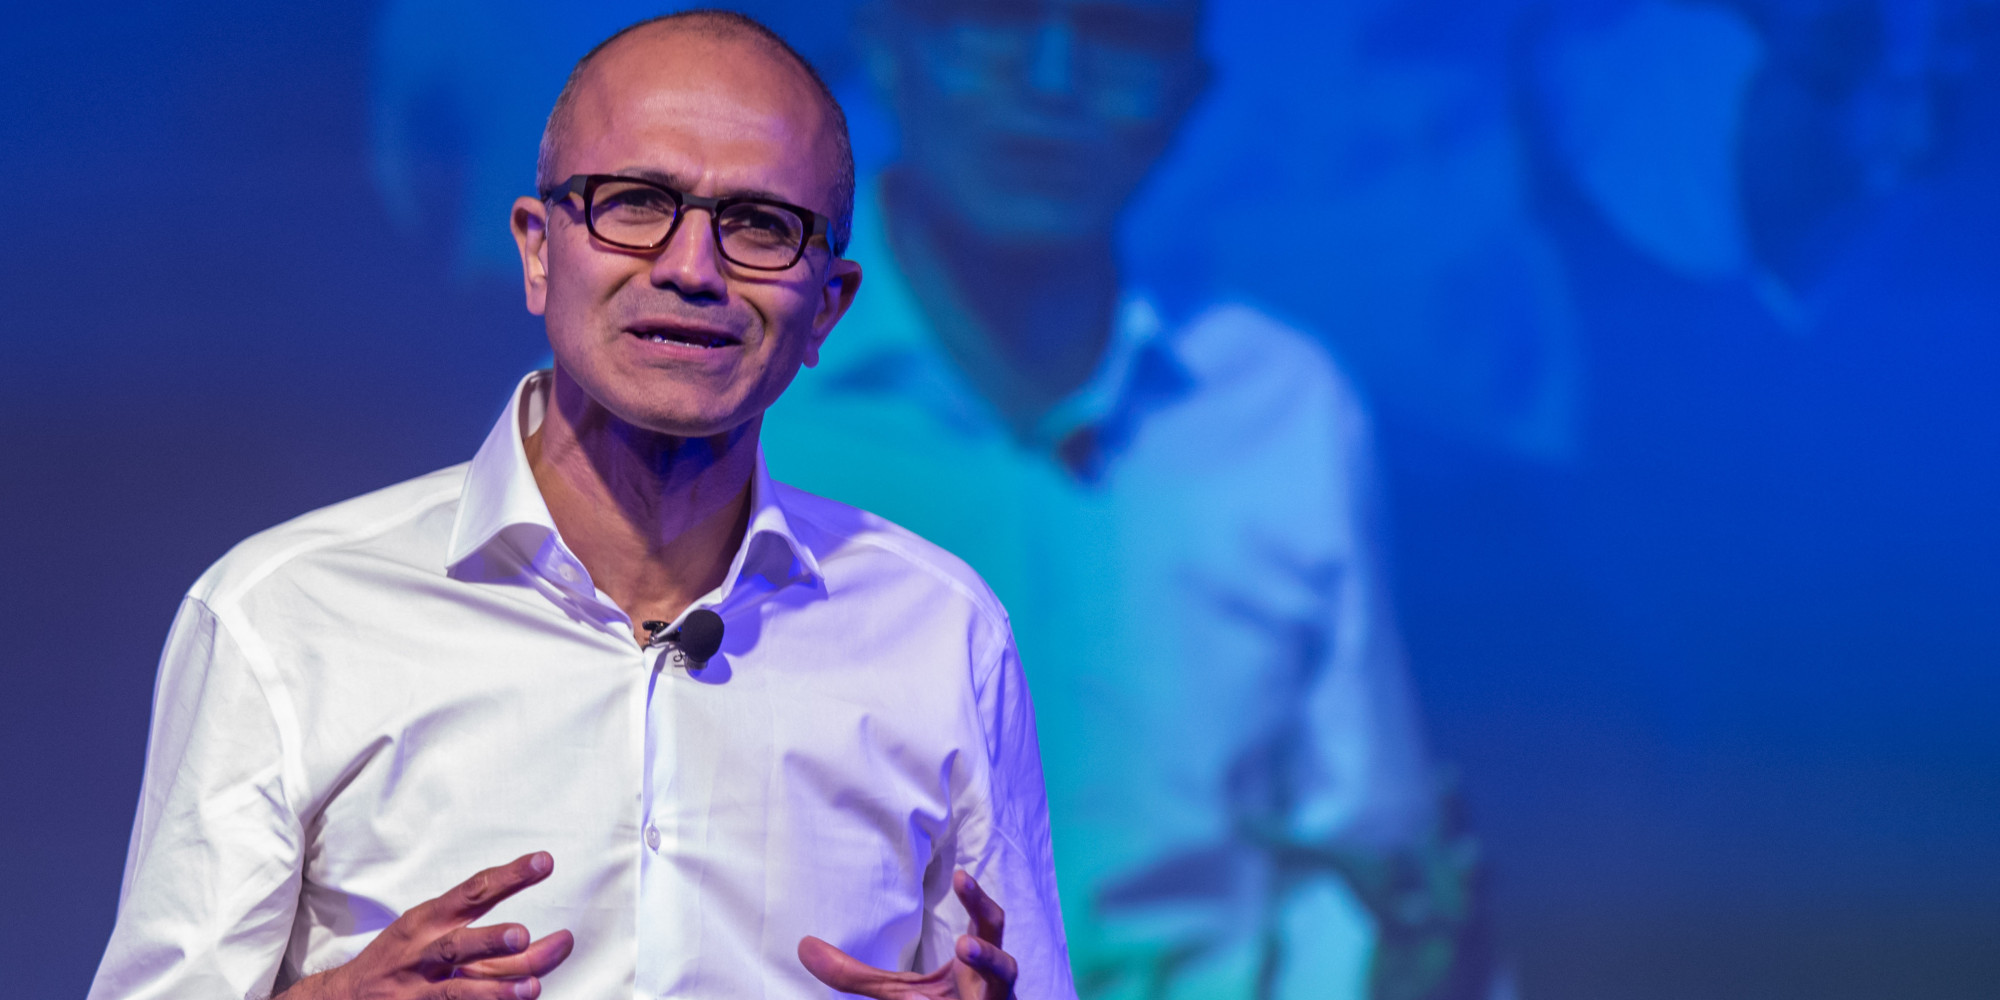 Microsoft ceo never had to ask for a raise or promotion microsoft ceo never had to ask for a raise or promotion apparently huffpost ccuart Images